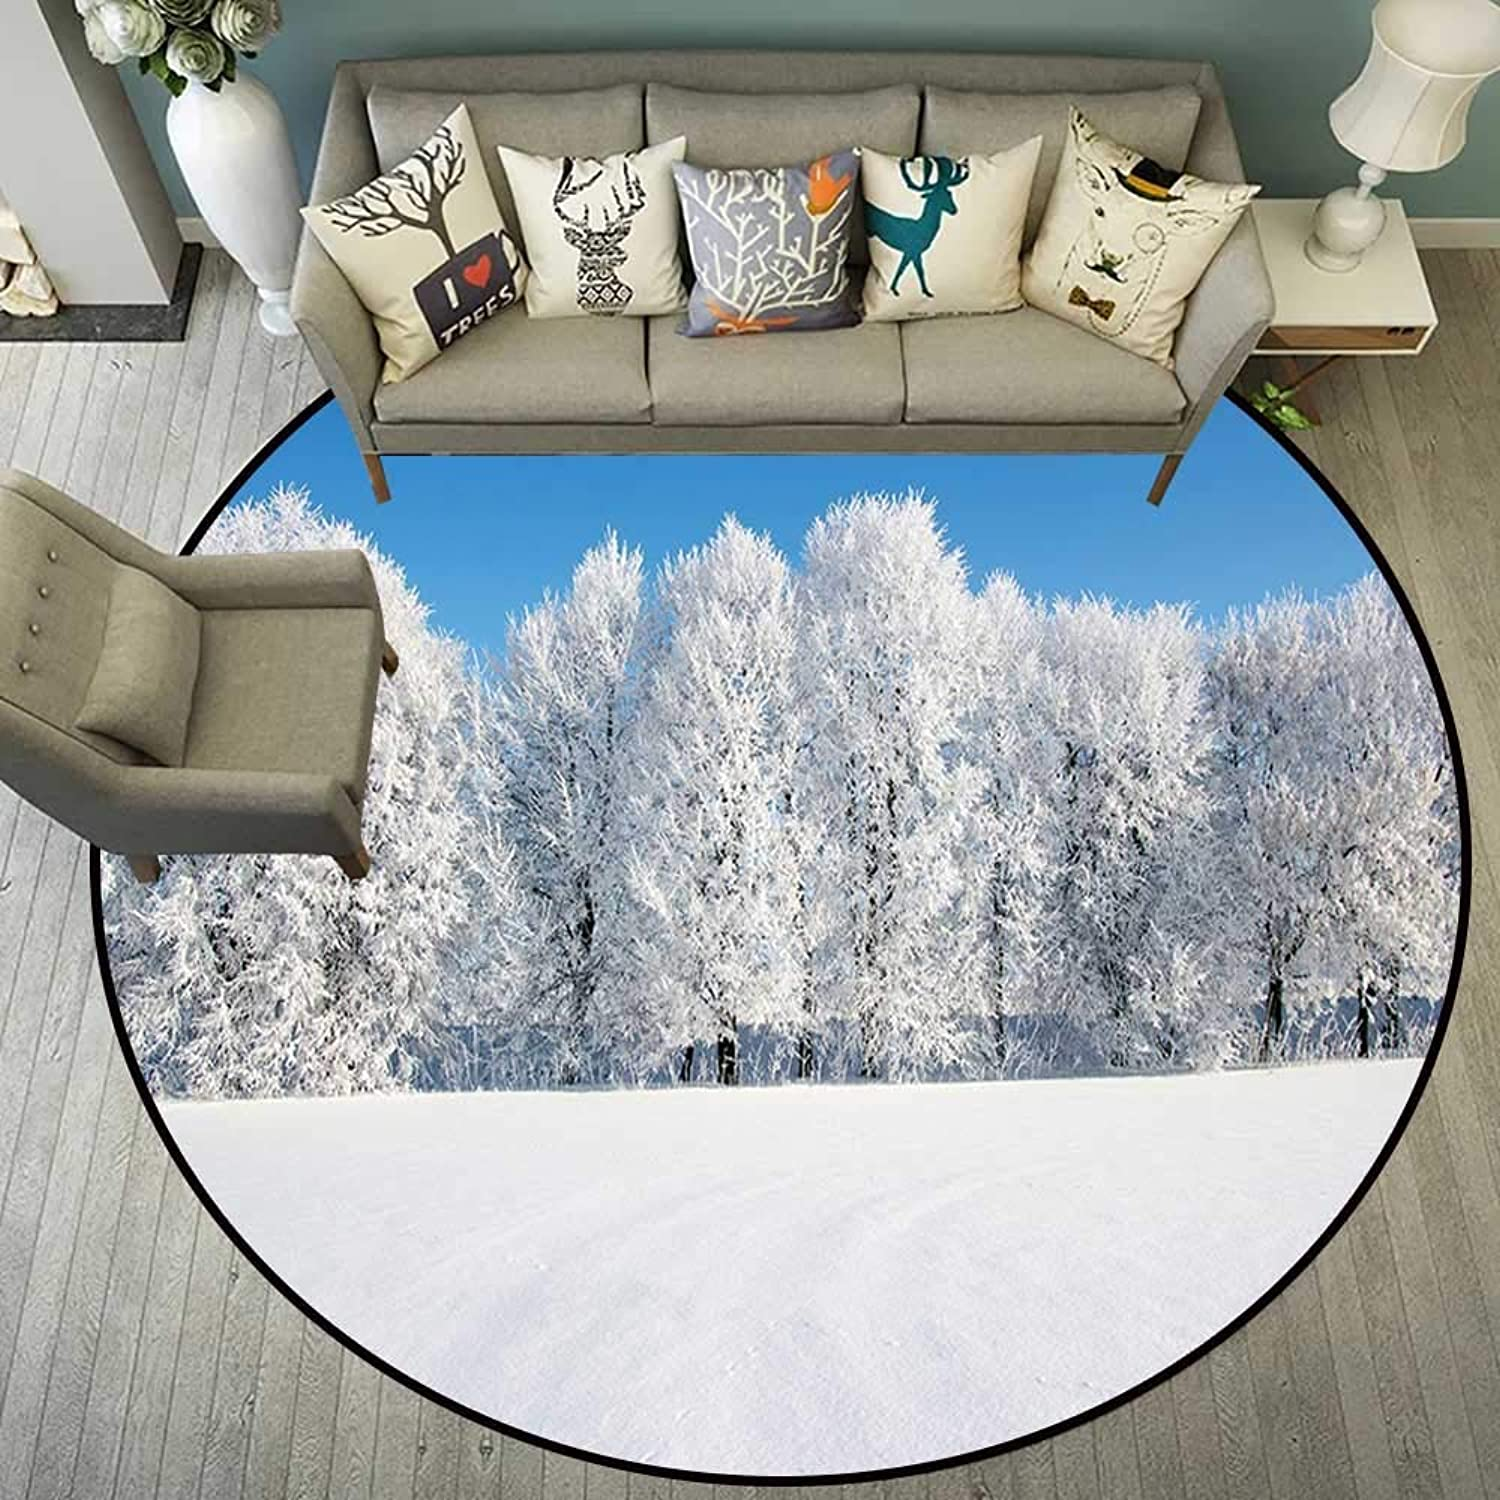 Circularity Floor mat Office Chair Round Indoor Floor mat Entrance Circle Floor mat for Office Chair Wood Floor Circle Floor mat Office Round mat for Living Room Pattern 5'7  Diameter